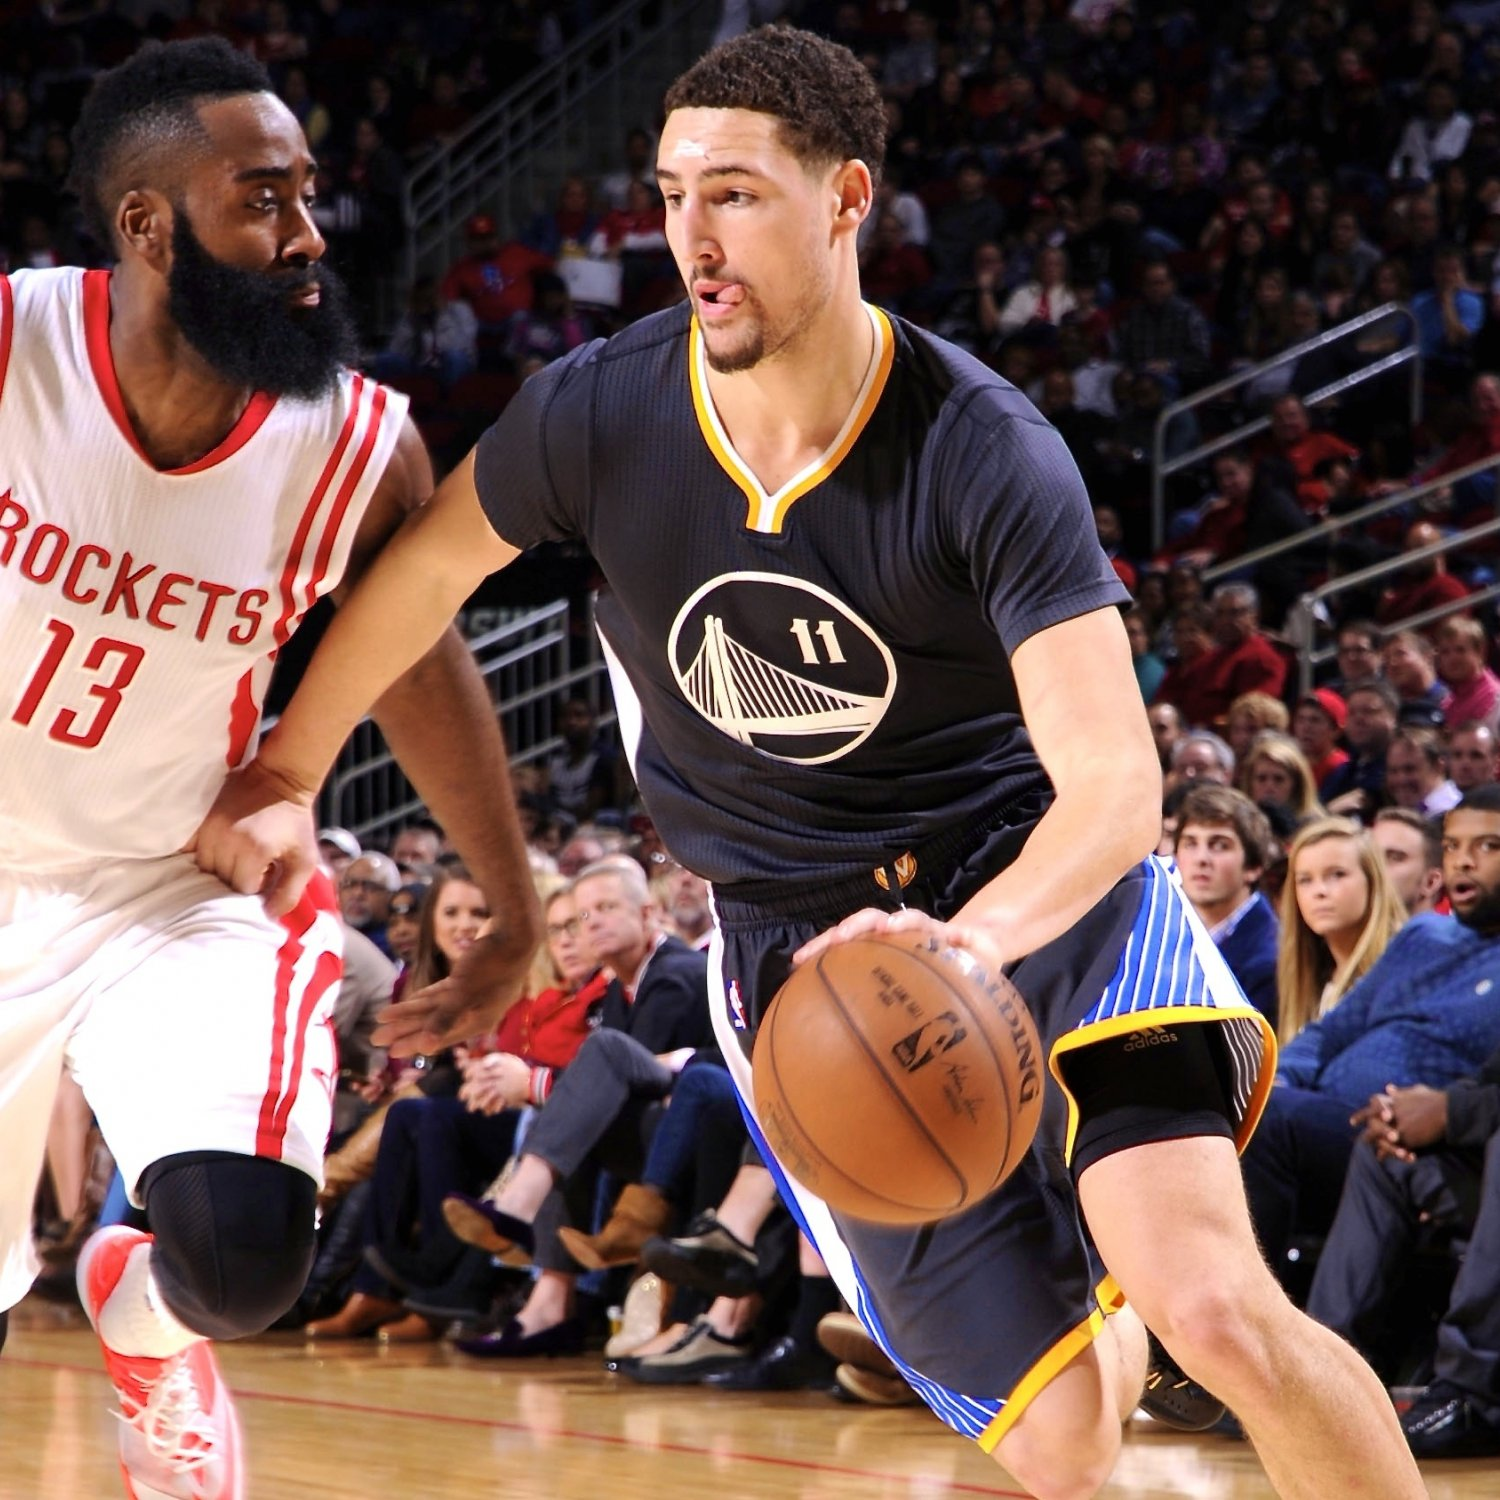 Houston Rockets Vs Golden State Warriors Lineup: Steve Kerr To Start Klay Thompson, James Harden In NBA All